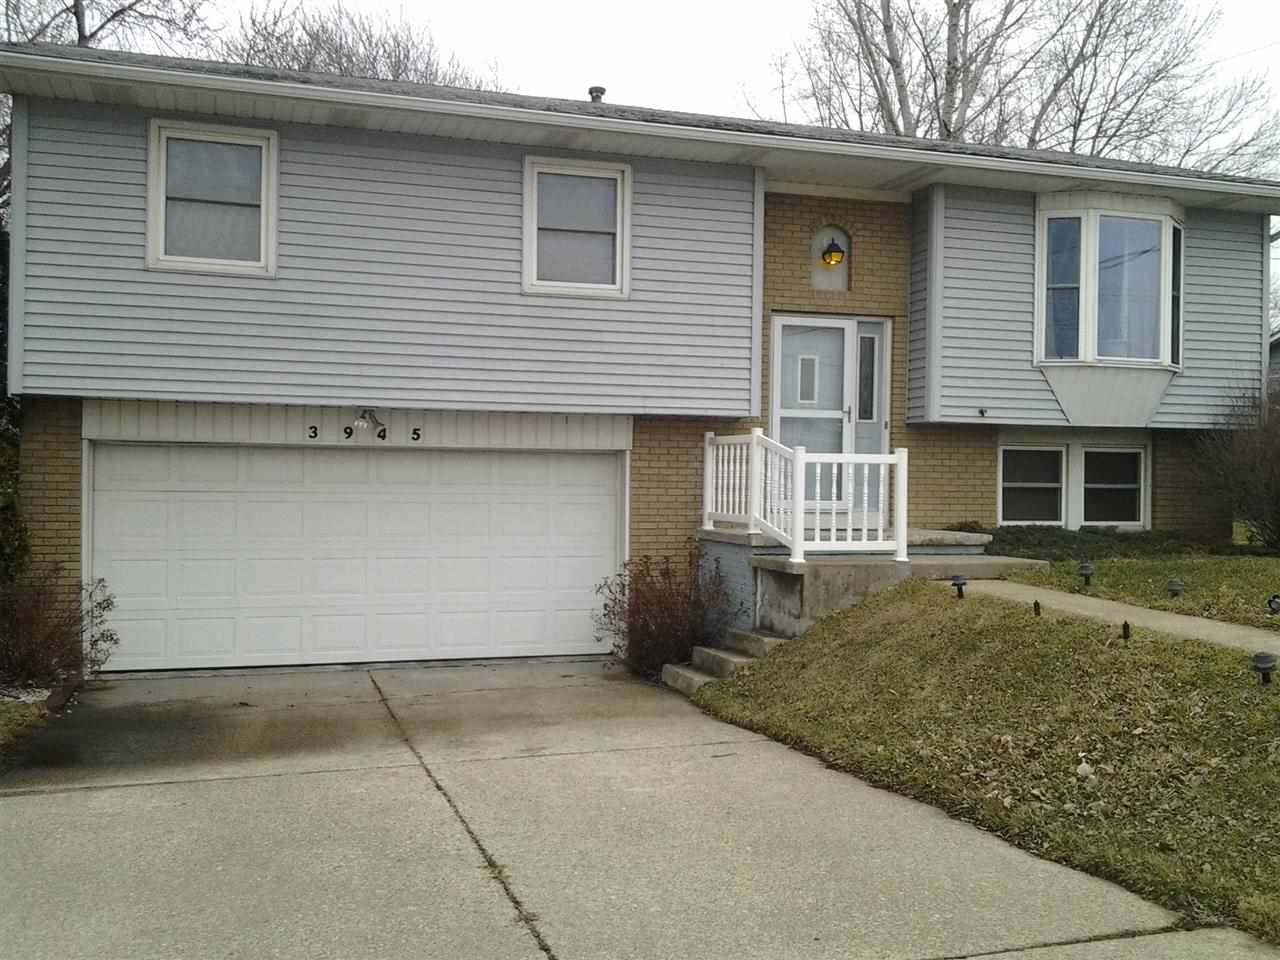 Rental Homes for Rent, ListingId:27654497, location: 3945 UTICA RIDGE Bettendorf 52722